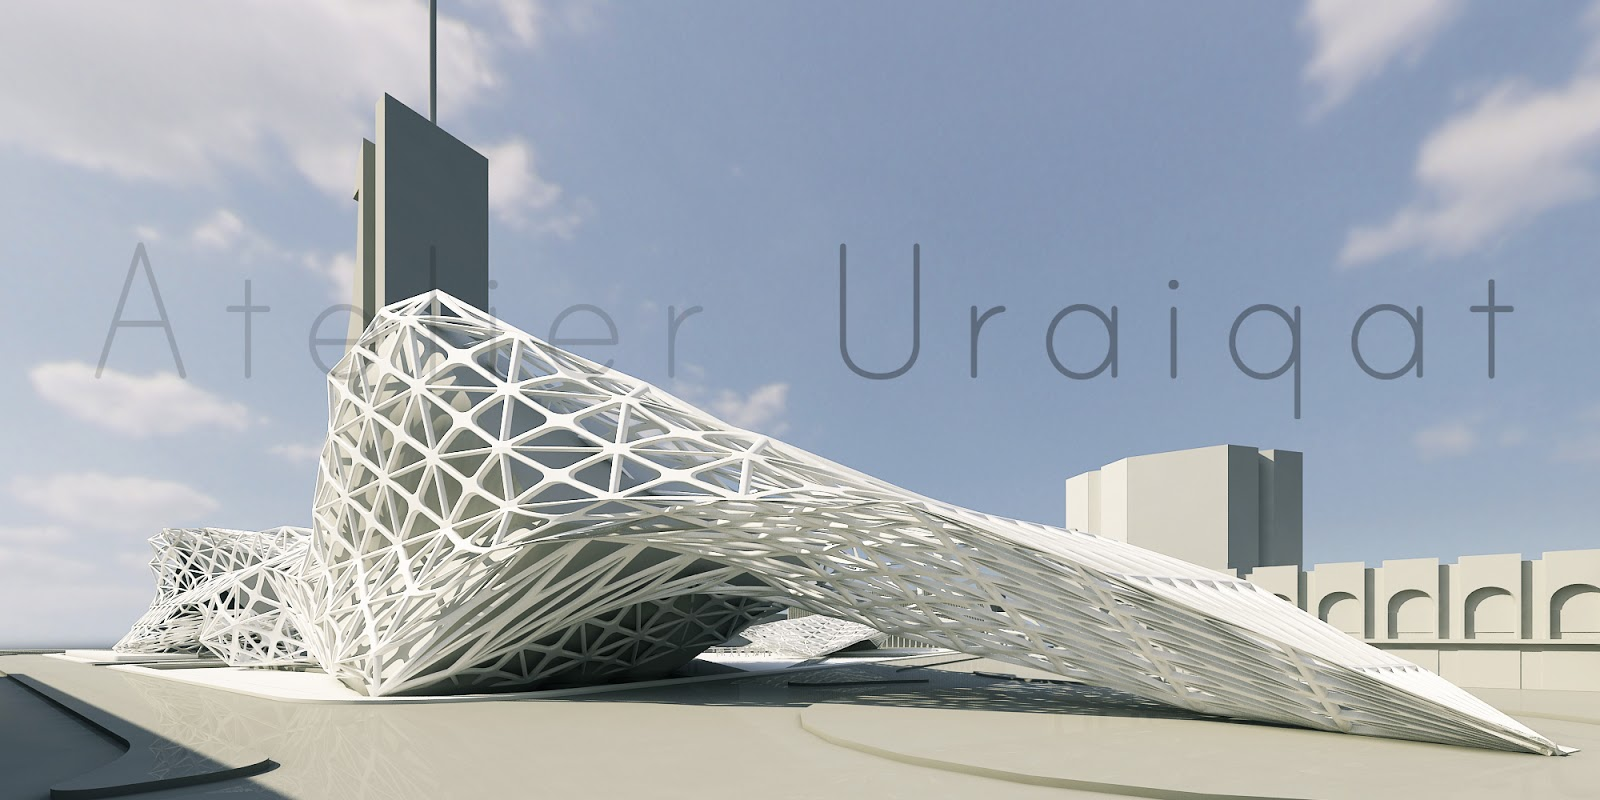 Atelier uraiqat cyborg architects the effect of digital Architecture and design